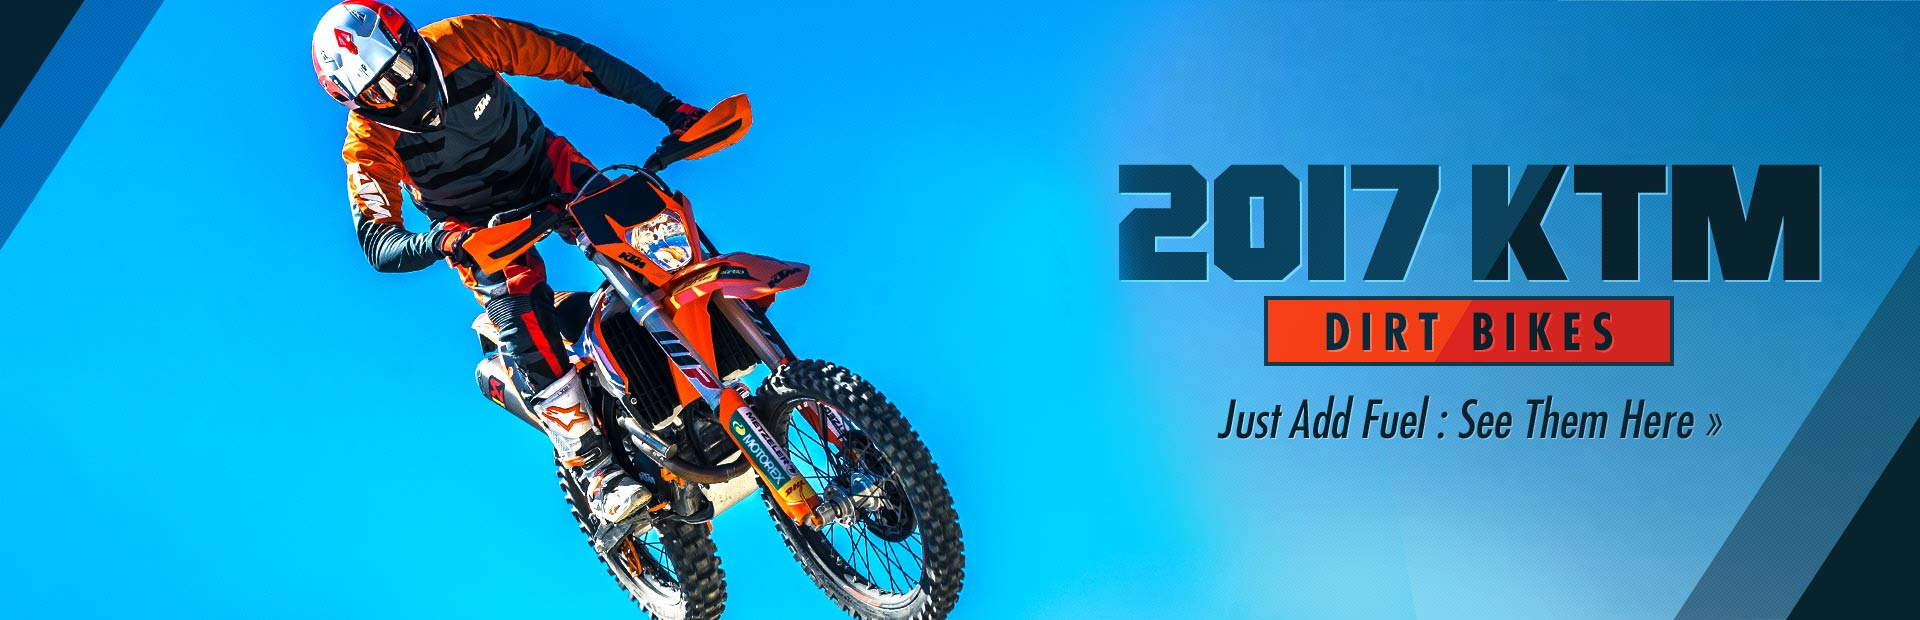 2017 KTM Dirt Bikes: Click here to view the models.